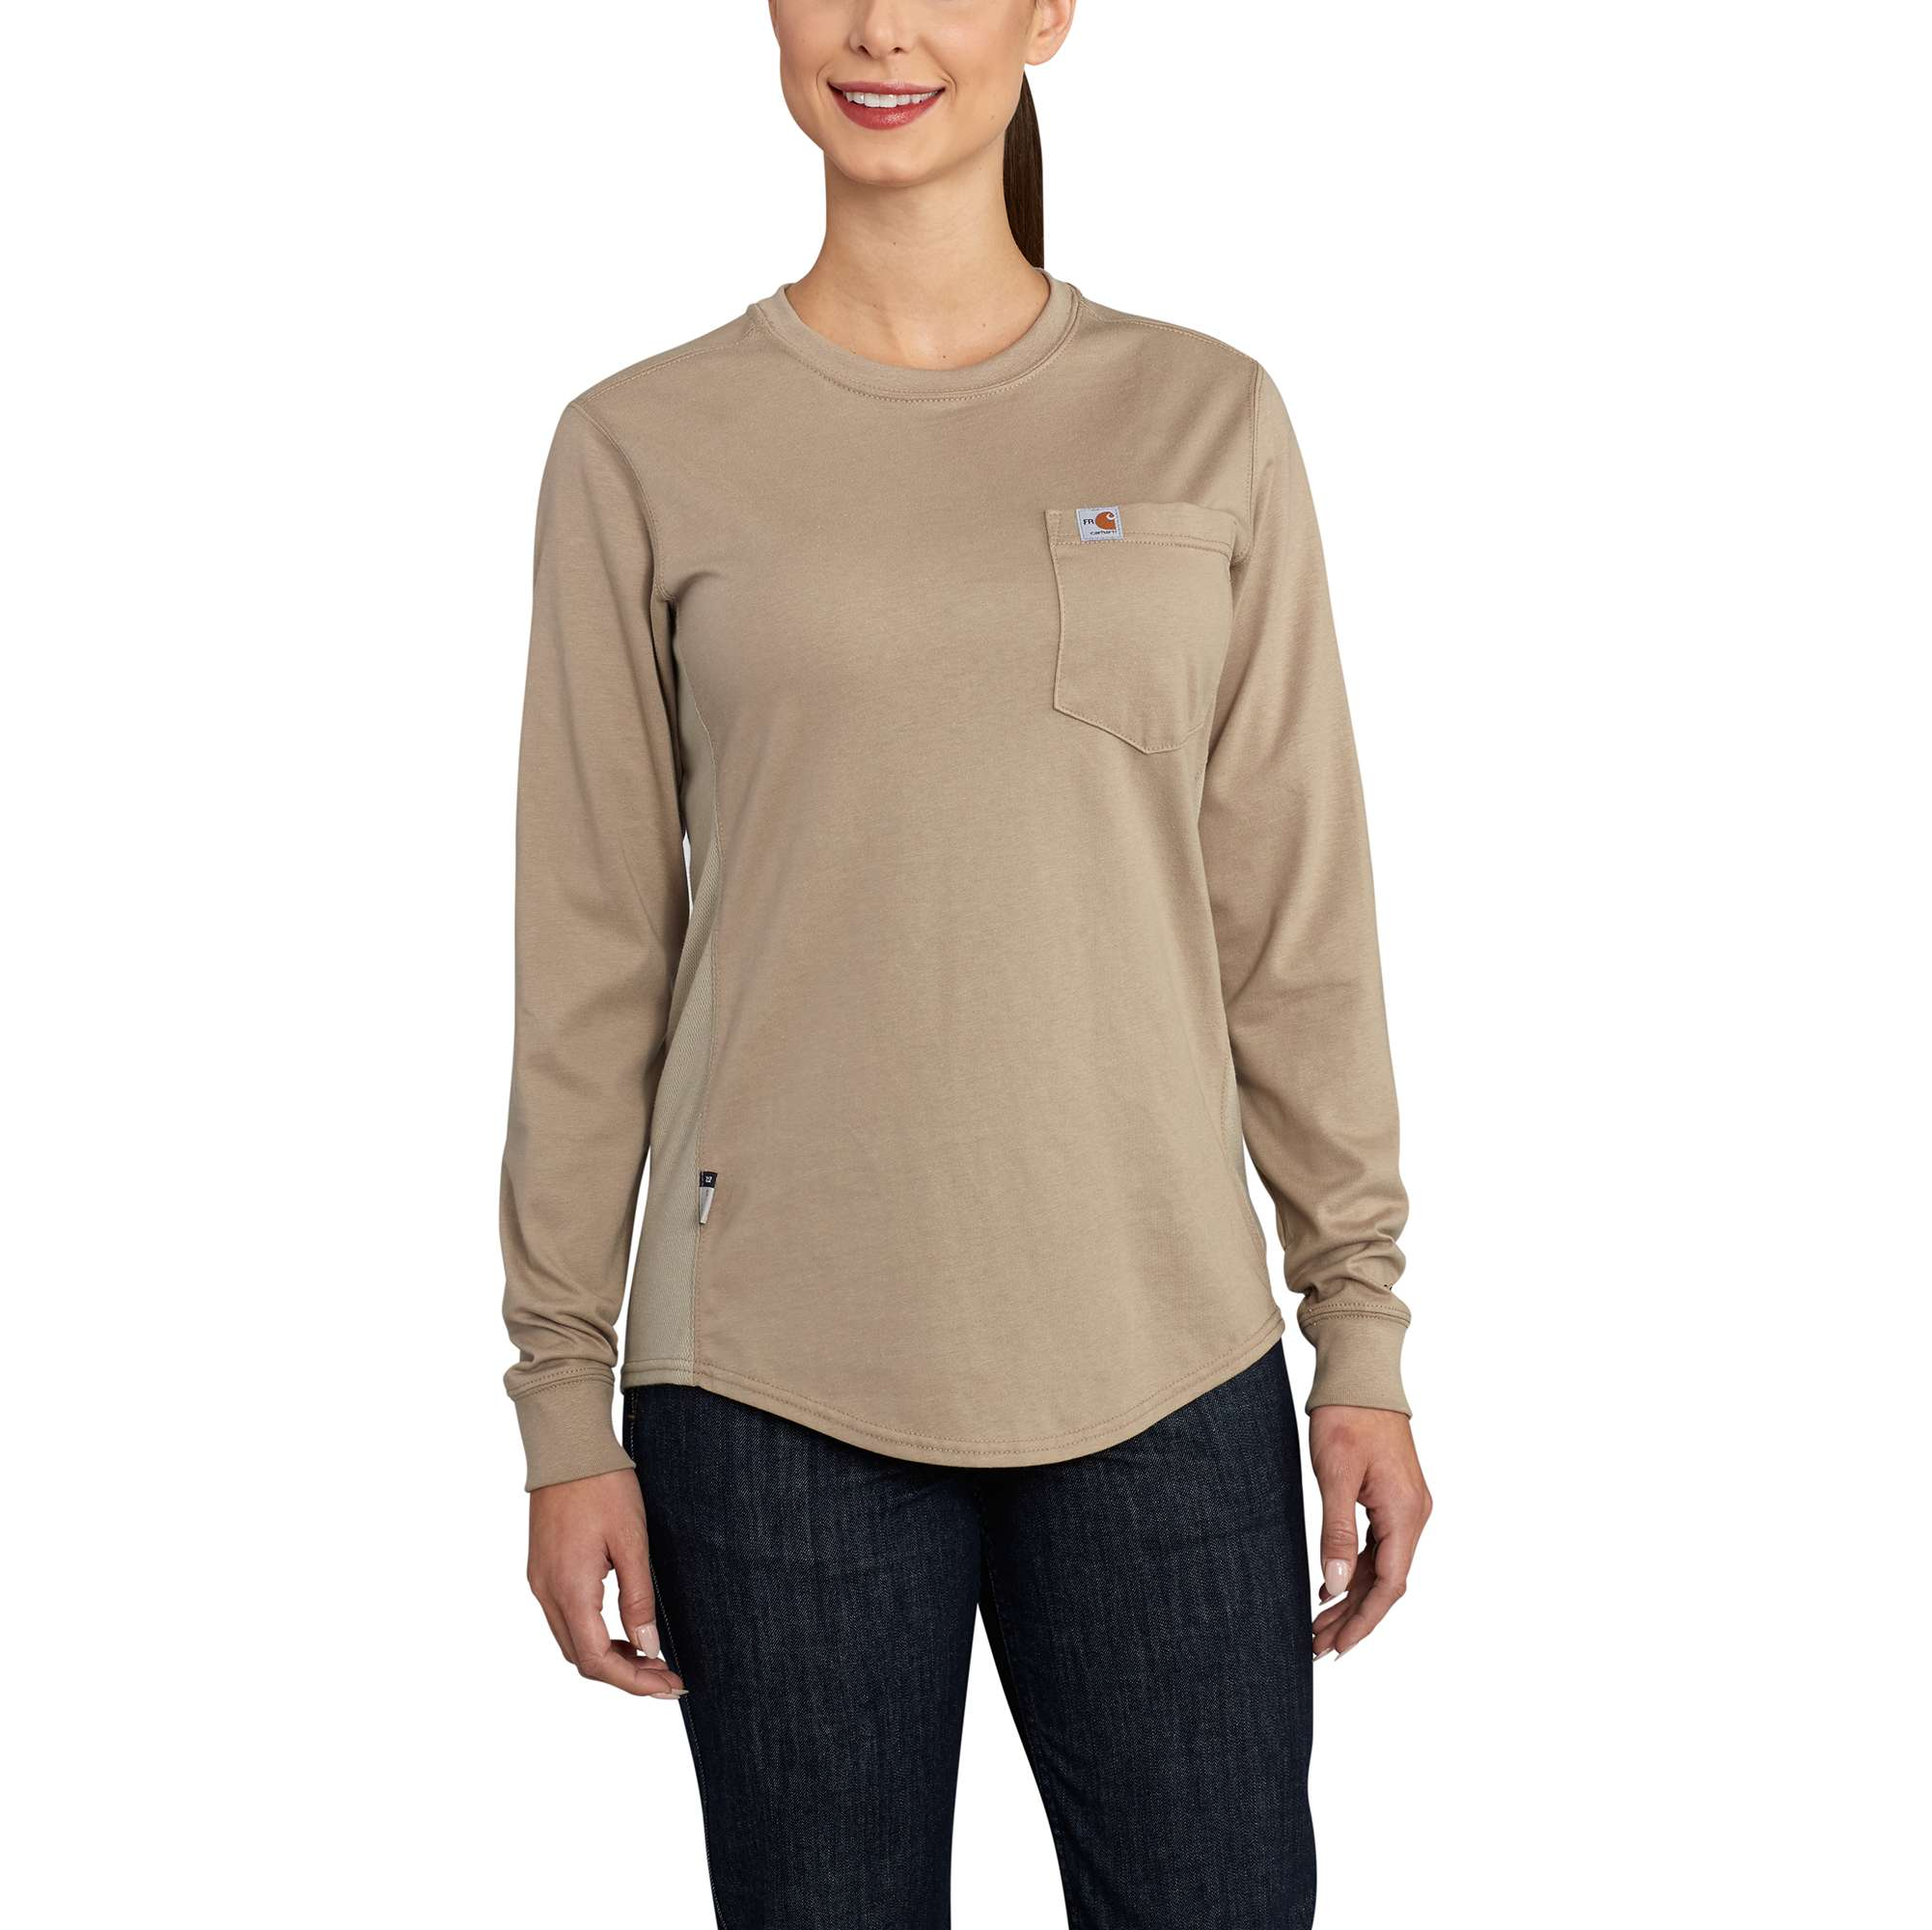 0a4a50dc4434 Womens Flame-Resistant Womens Force Cotton Long Sleeve Crew T Shirt-Carhartt